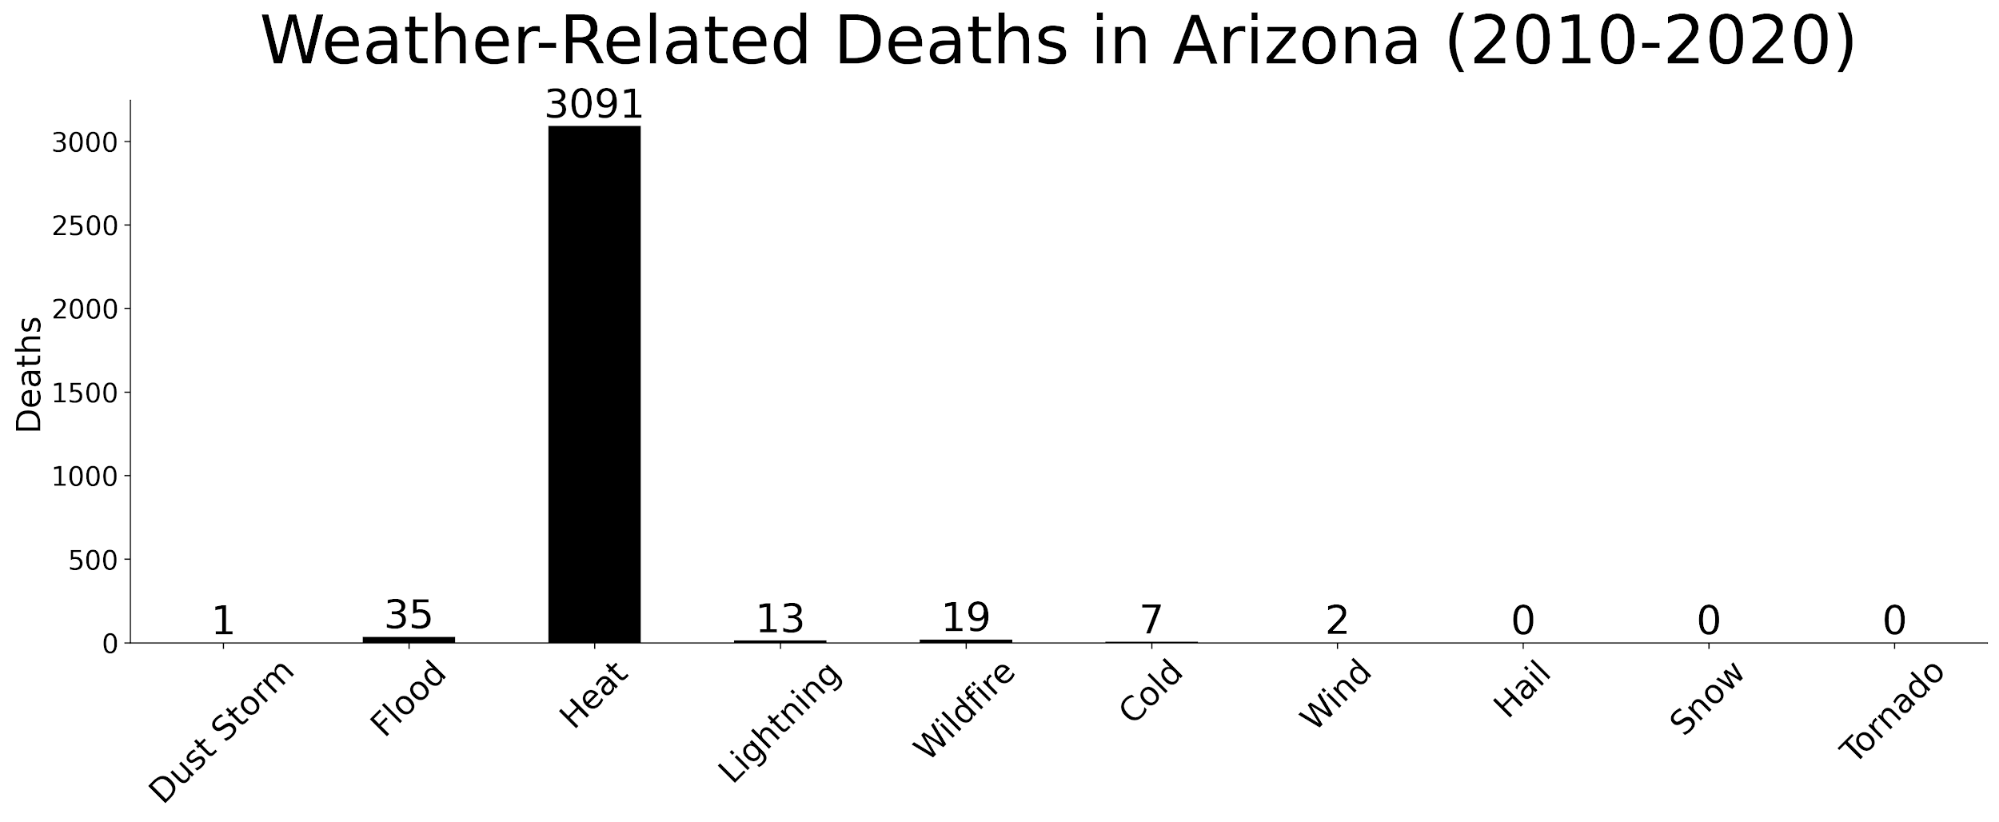 Weather-related deaths in Arizona (2010-2020)